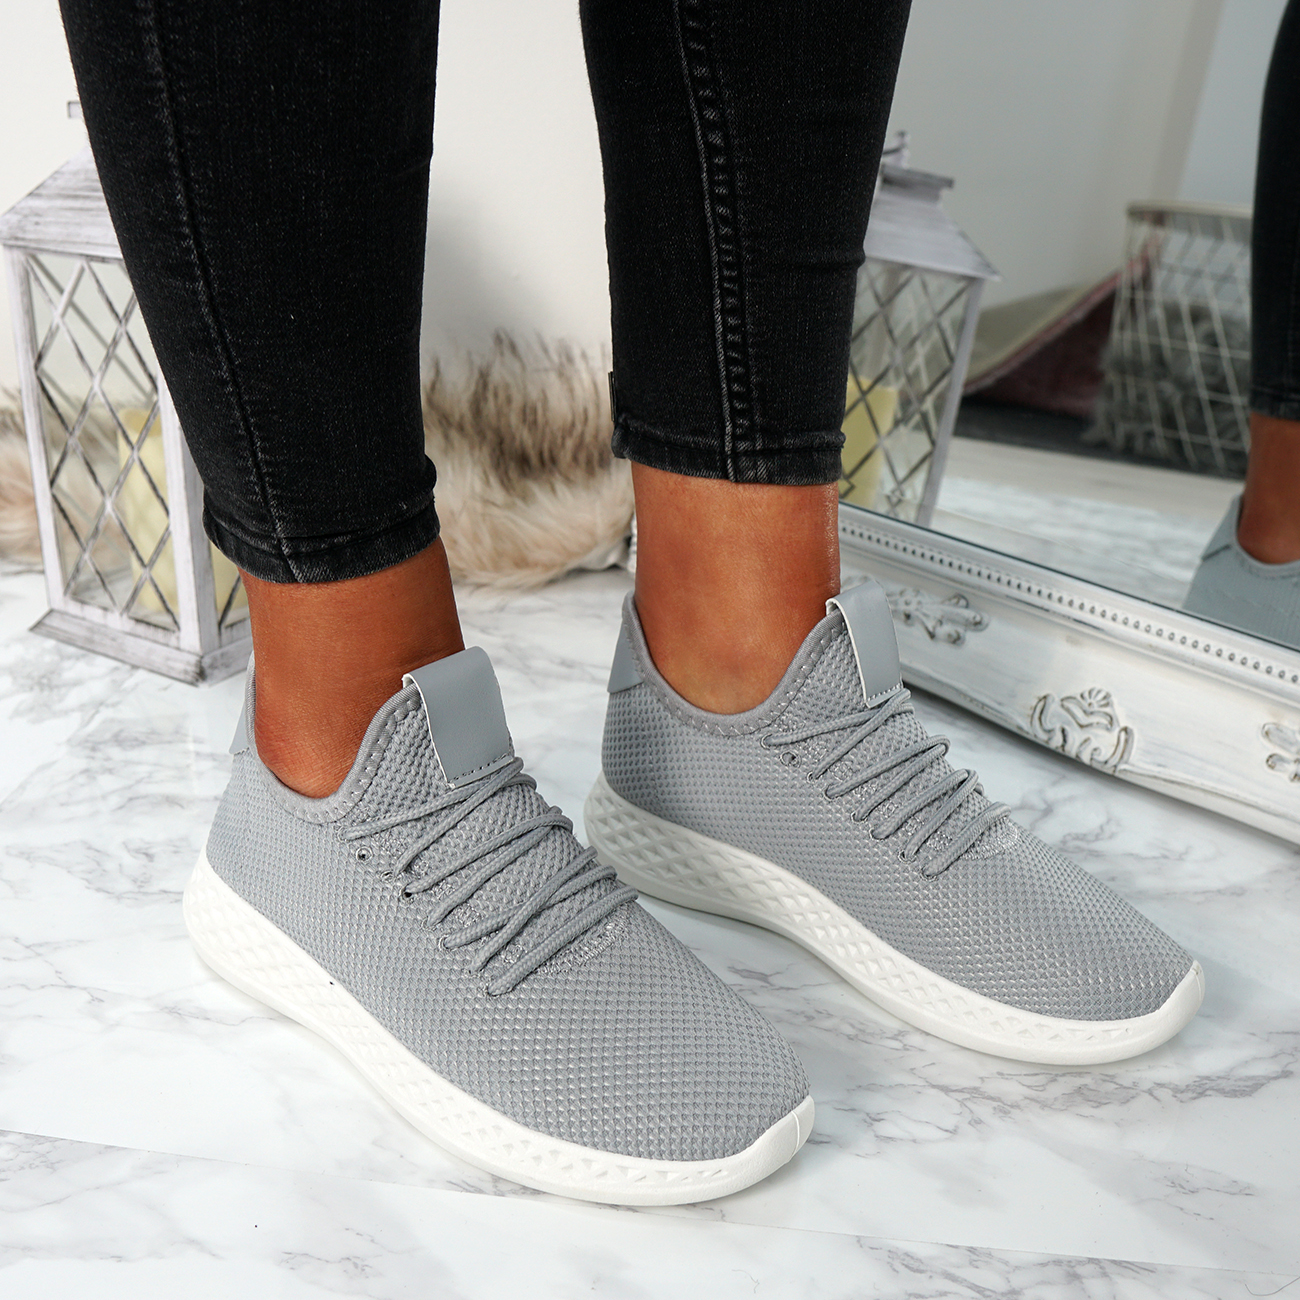 WOMENS LADIES LACE UP RUNNING GYM TRAINERS SNEAKERS FASHION SHOES SIZE UK